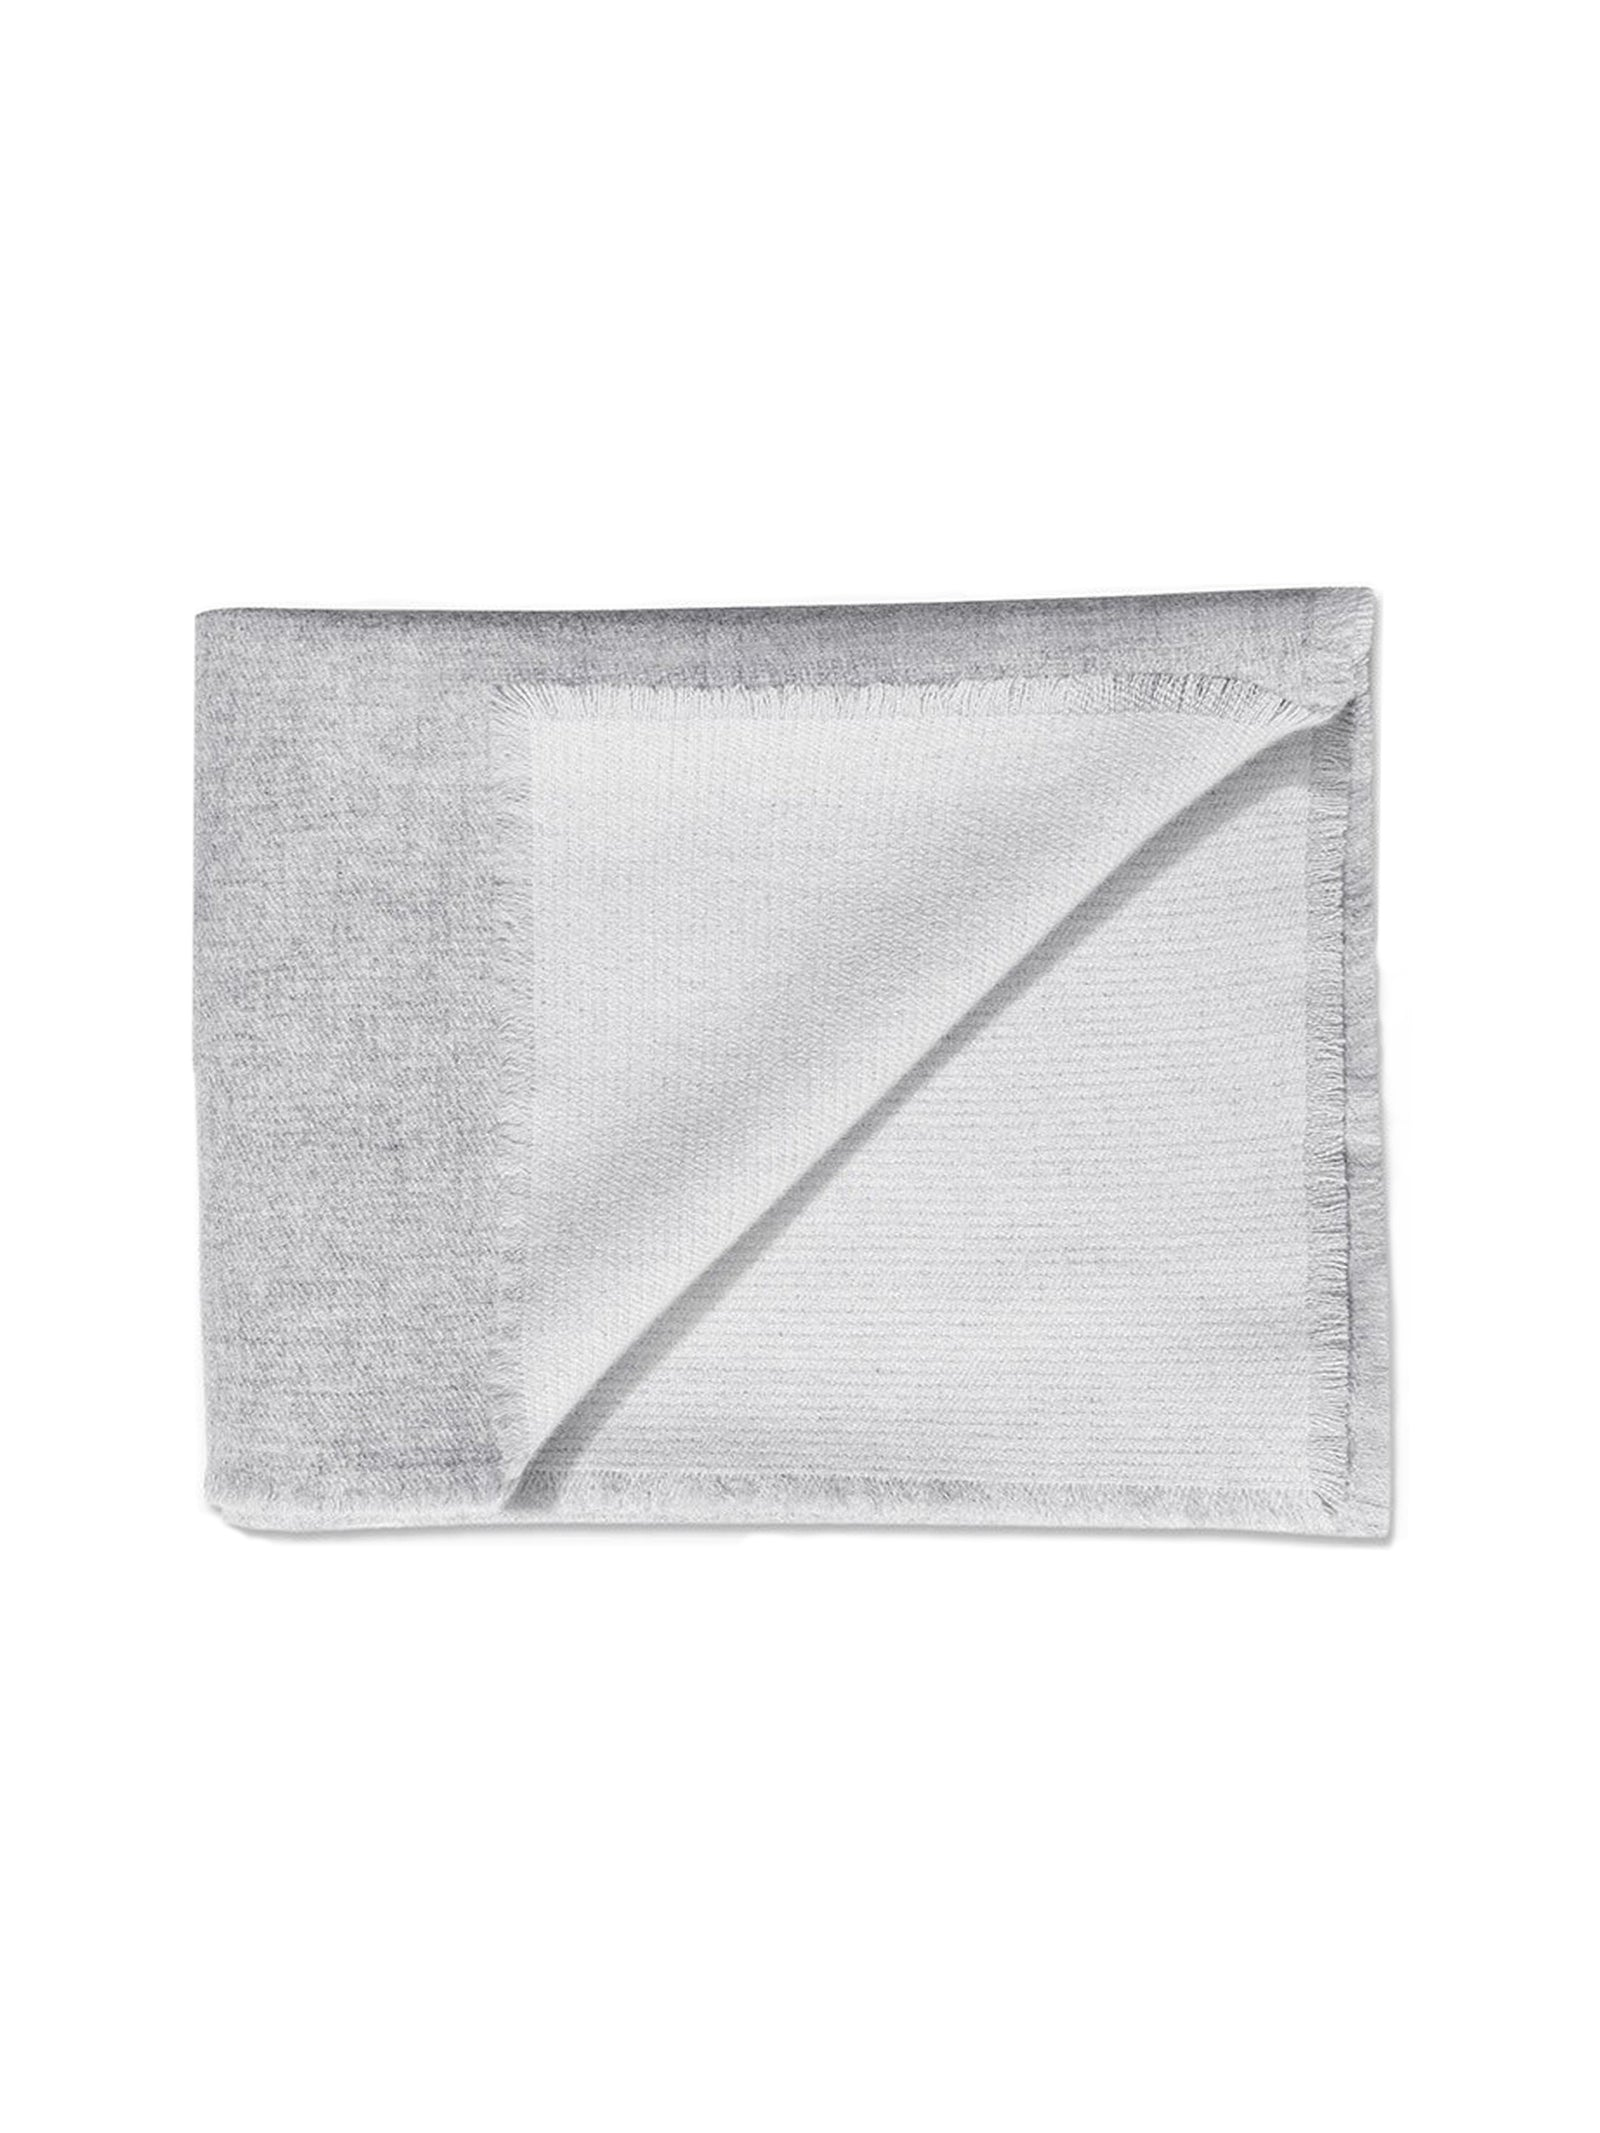 Double Sided Cashmere Throw - Grey / Ivory